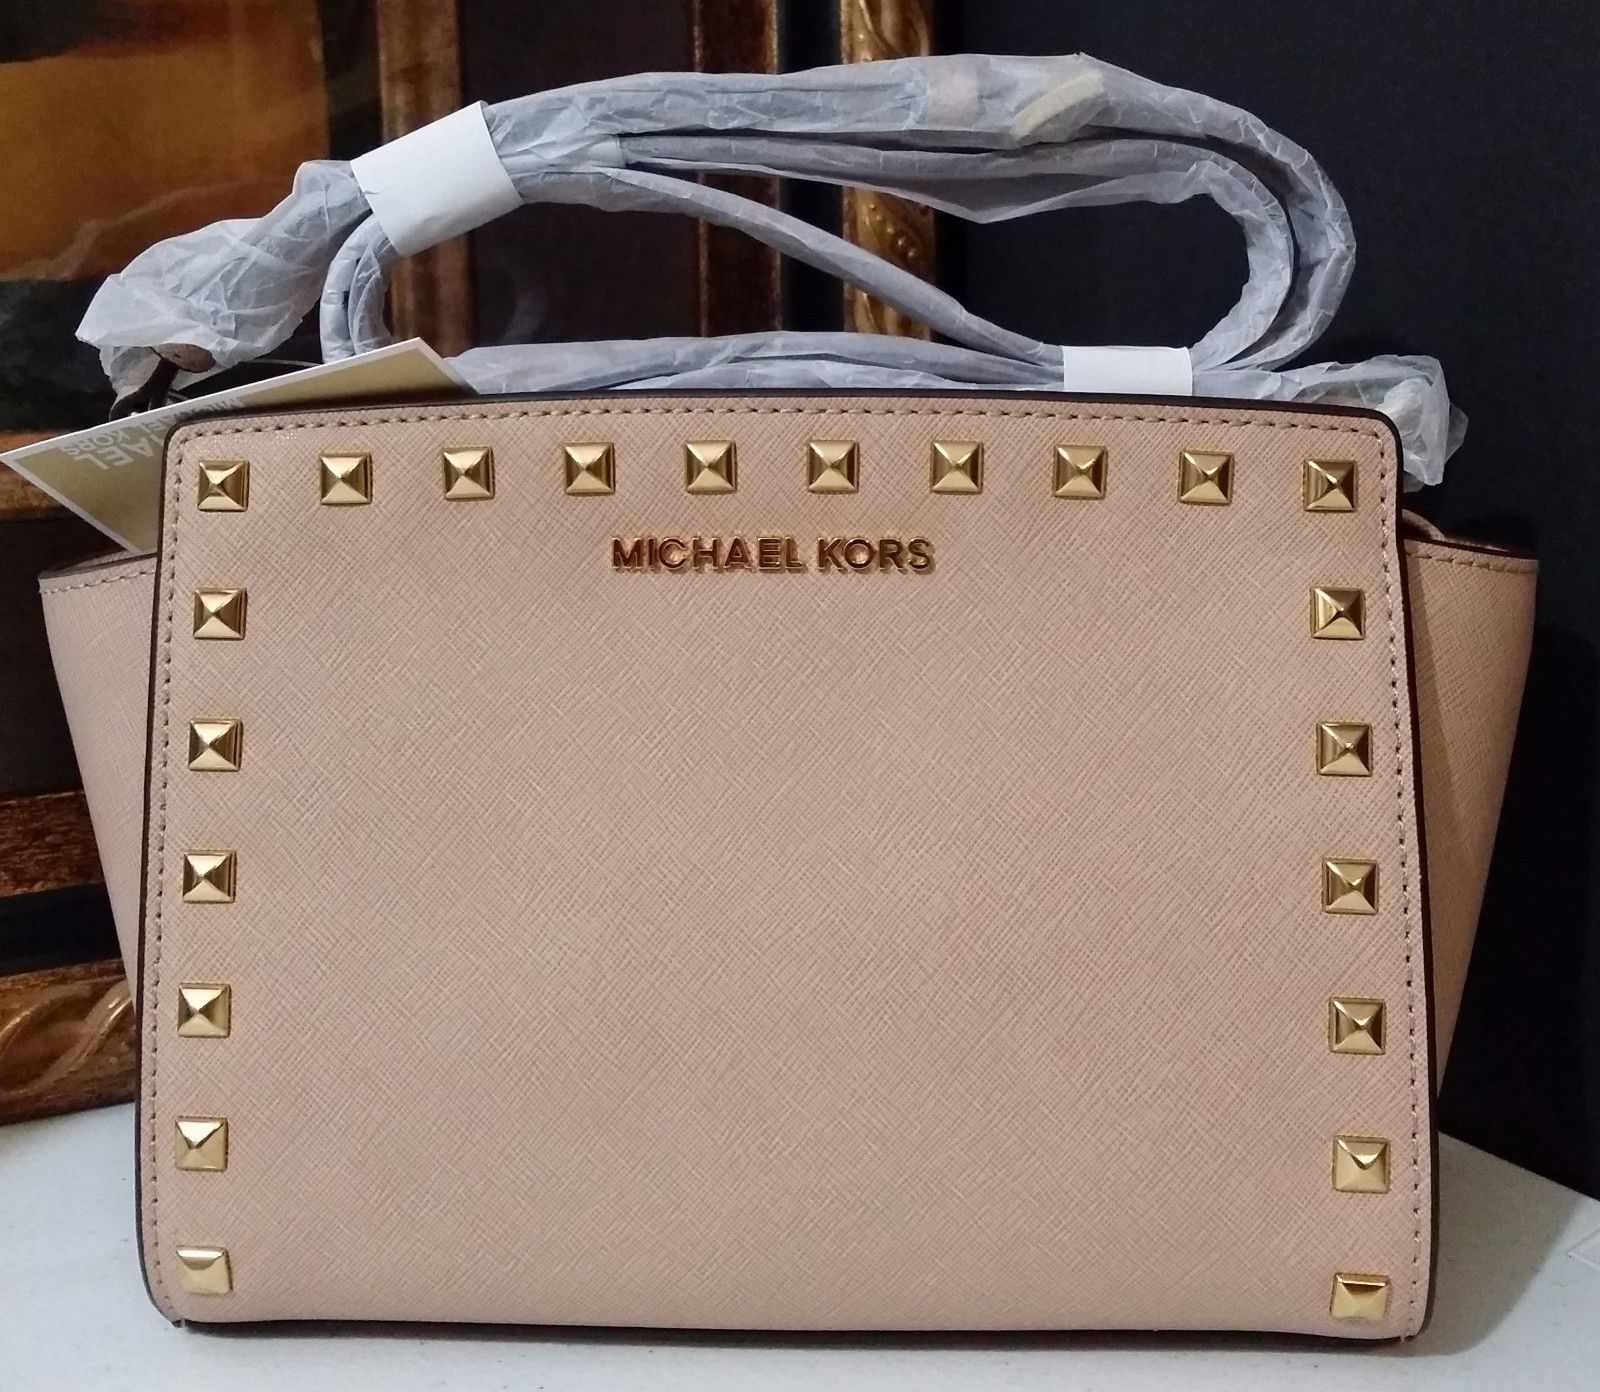 NWT Michael Kors Selma Stud Medium Messenger Saffiano Leather Blush MSRP $248